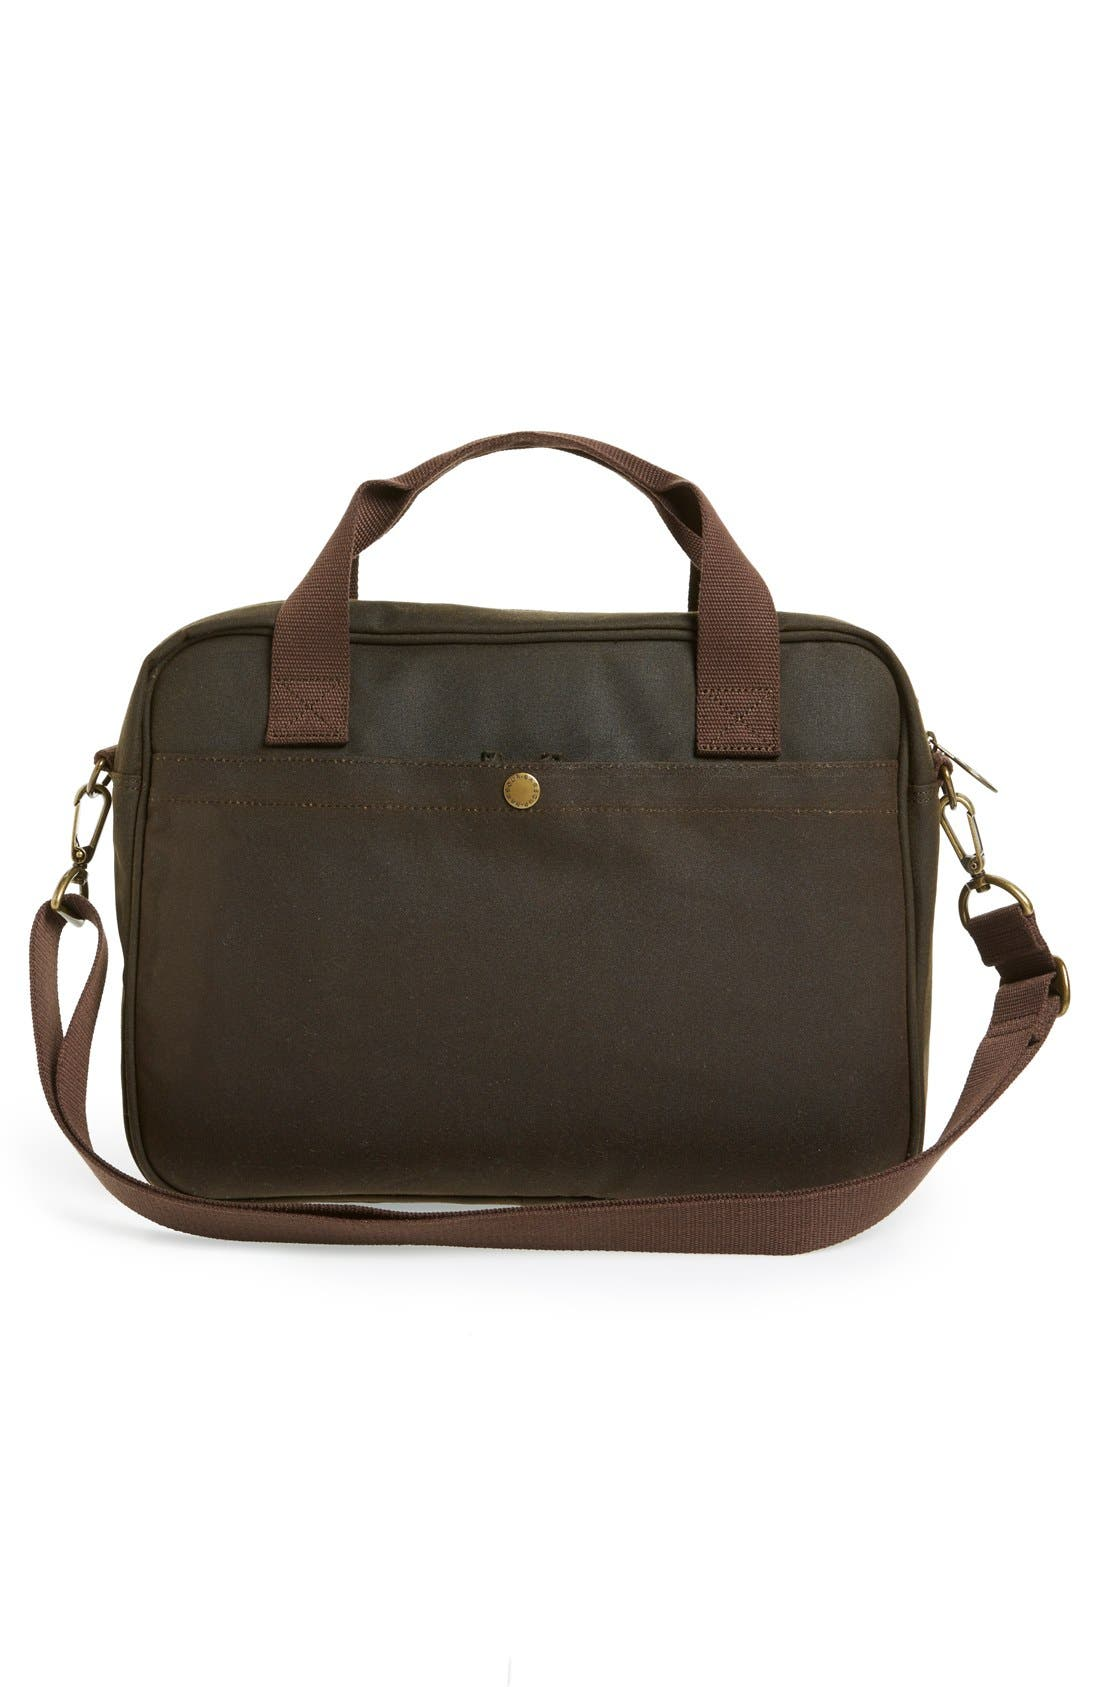 'Longthorpe' Waxed Canvas Laptop Bag,                             Alternate thumbnail 3, color,                             340